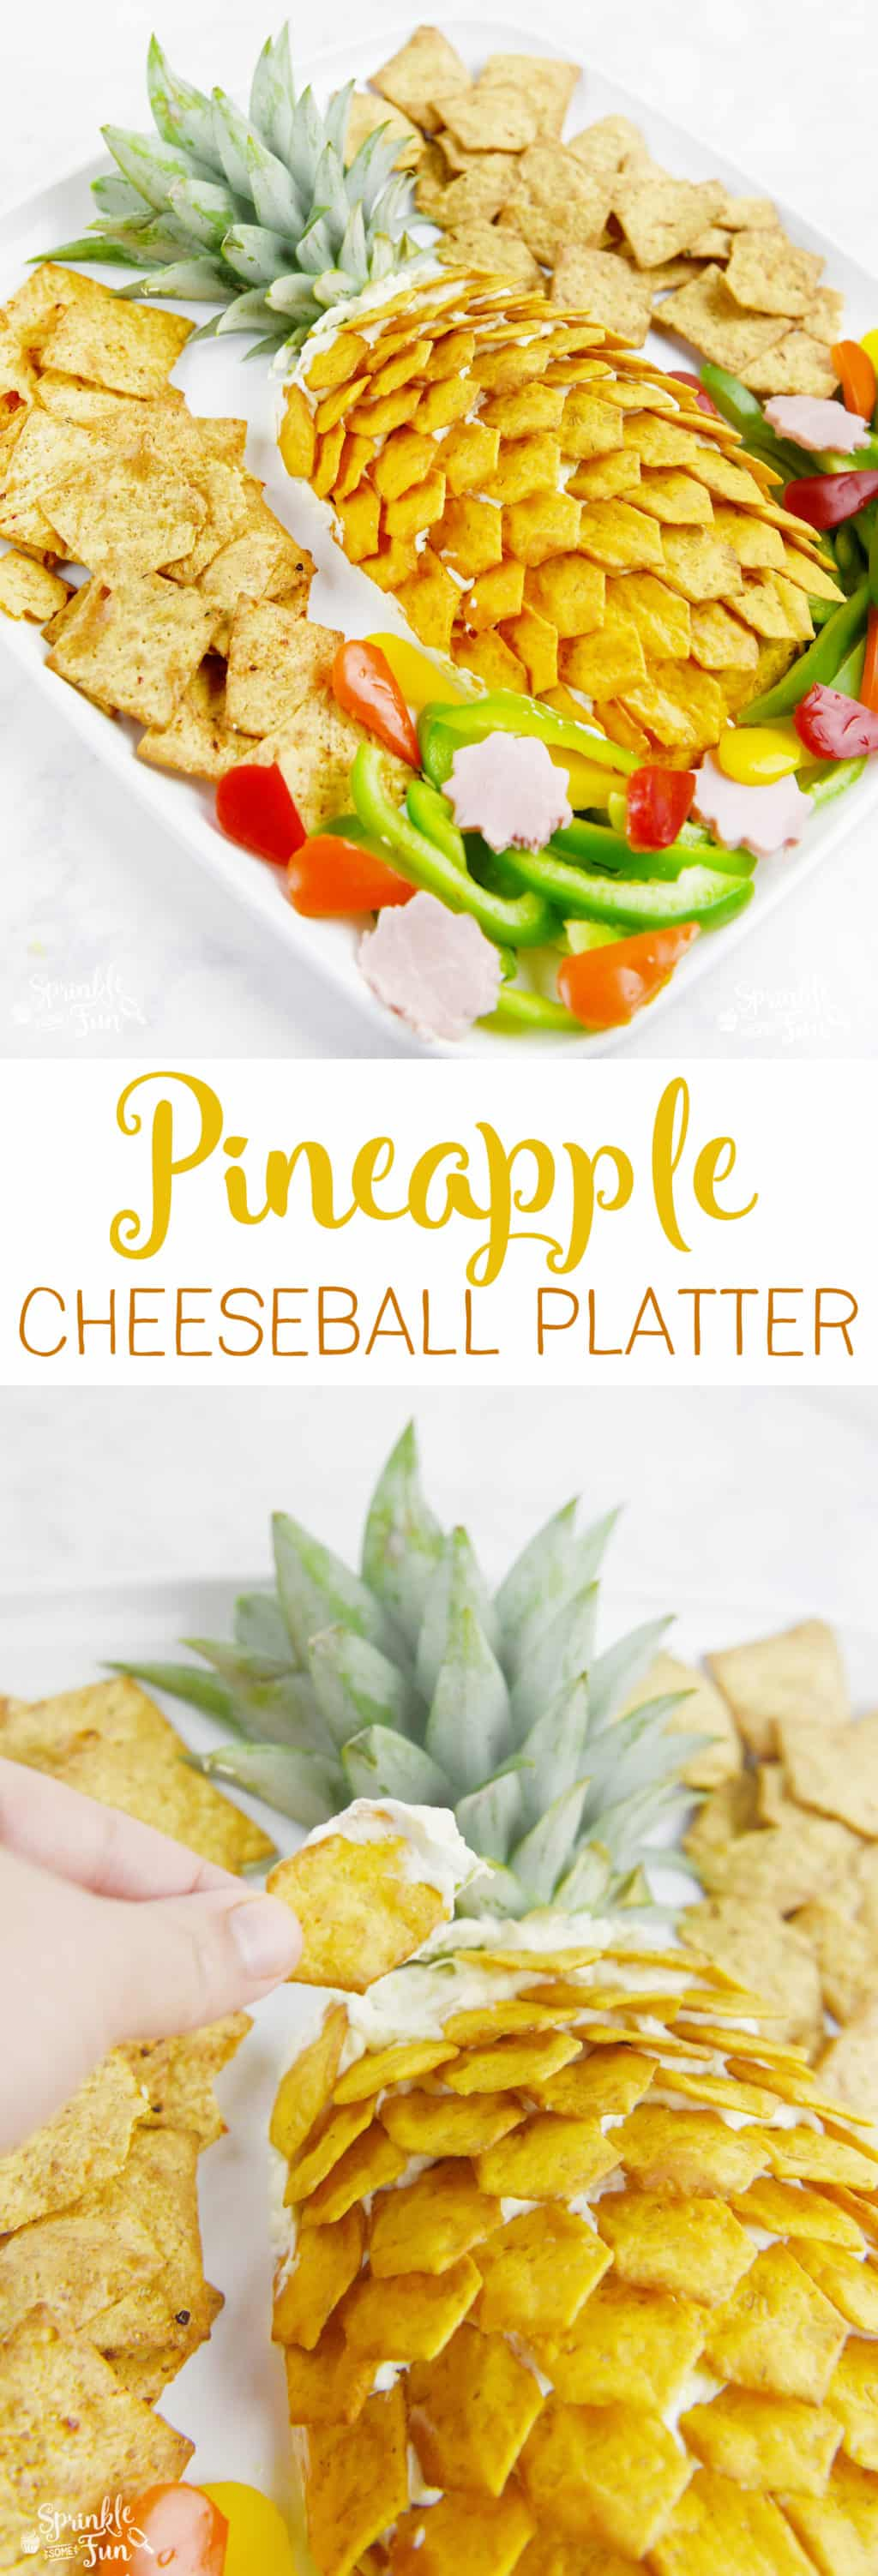 ThisPineapple Cheeseball Platter would be perfect to serve for any summer event. Everyone will love this delicious Hawaiian inspired dip!